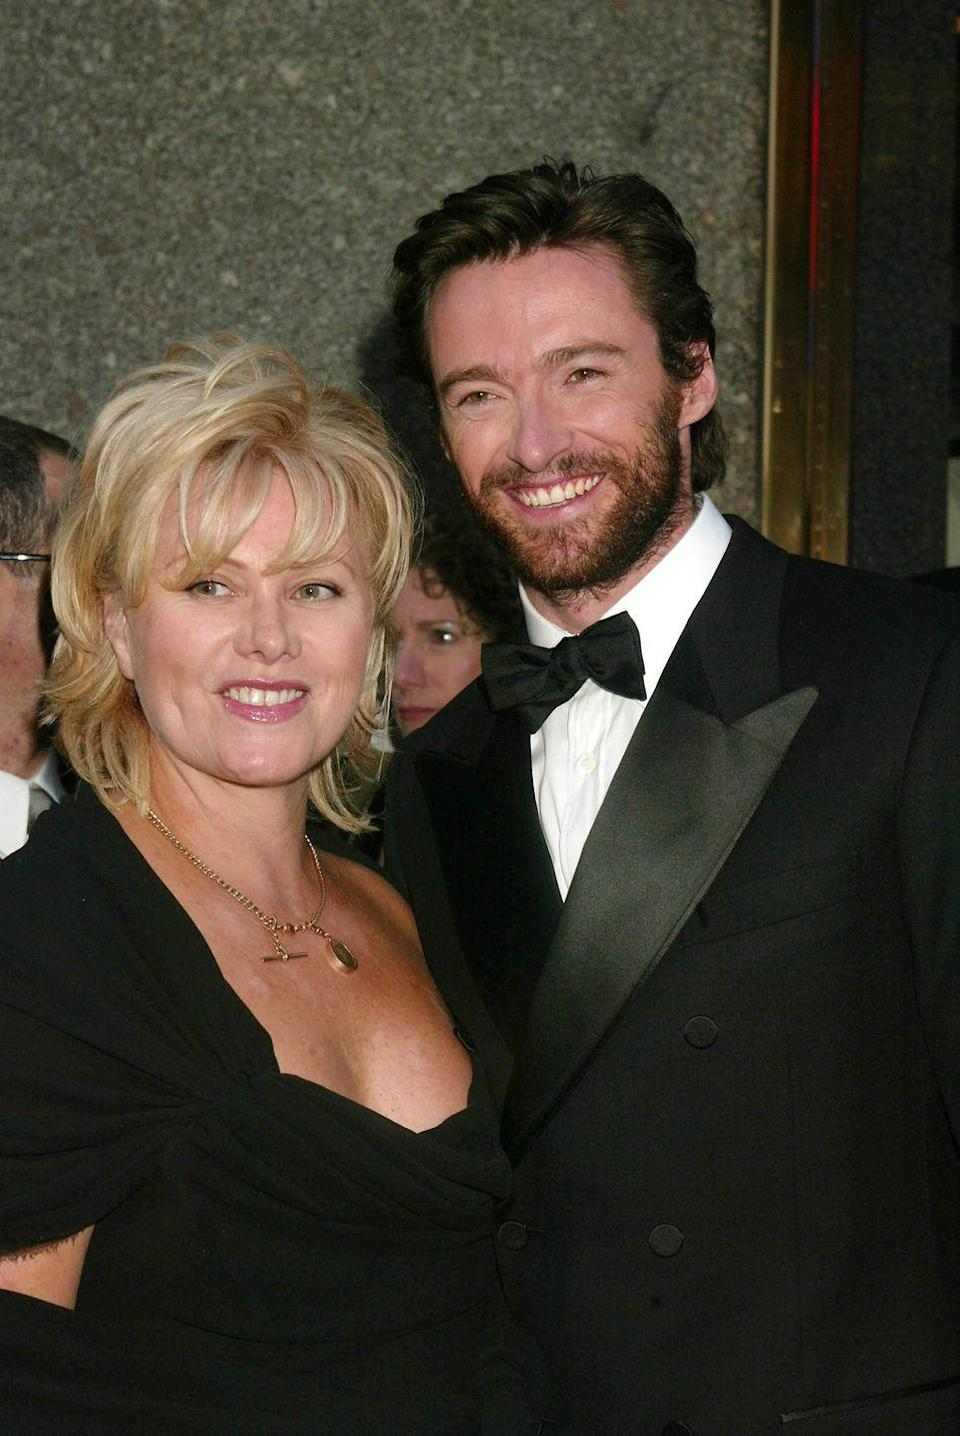 <p>The couple met on the set of the Australian drama Correlli in 1995 and have two kids together, Oscar and Ava.</p>